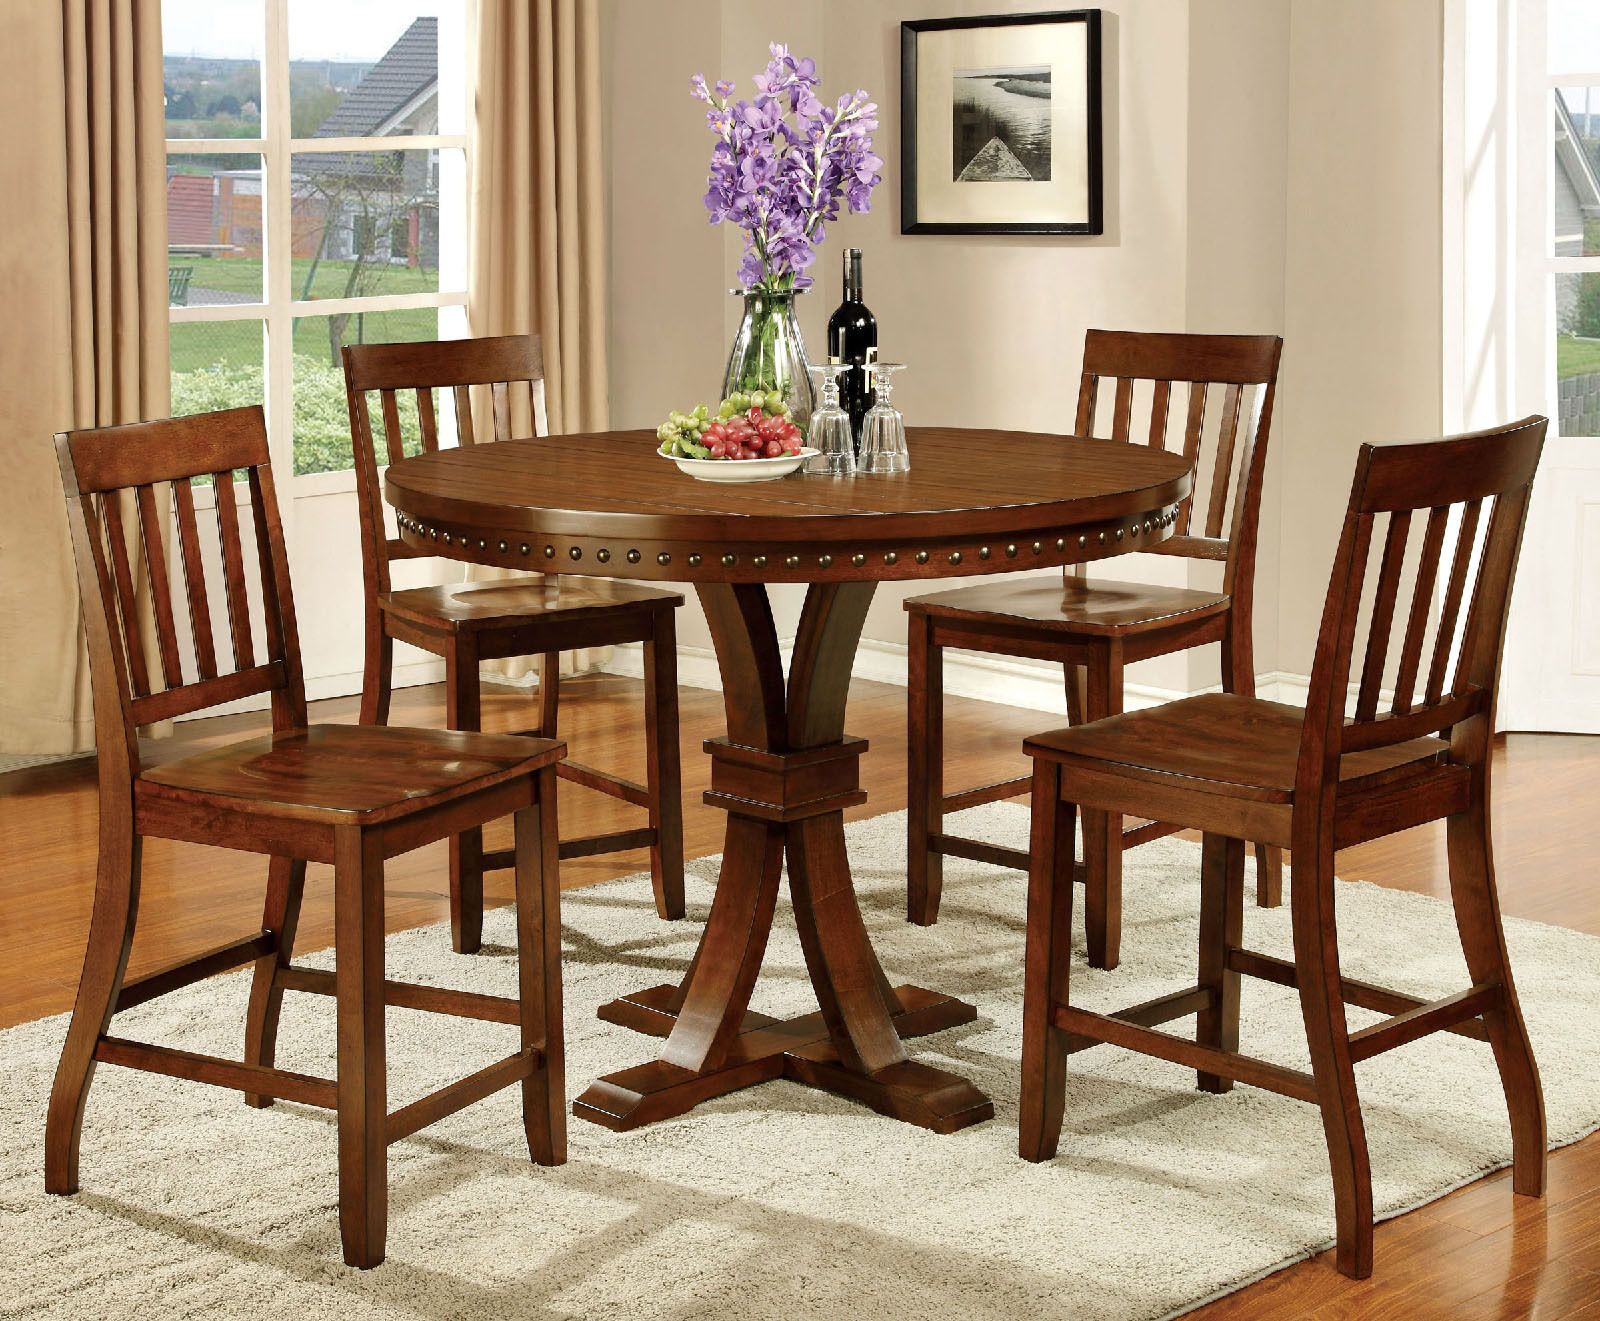 Modern Round Dining Table Dark Oak Finish Chairs Counter Height 5pc Dining Set For Sale Online Ebay